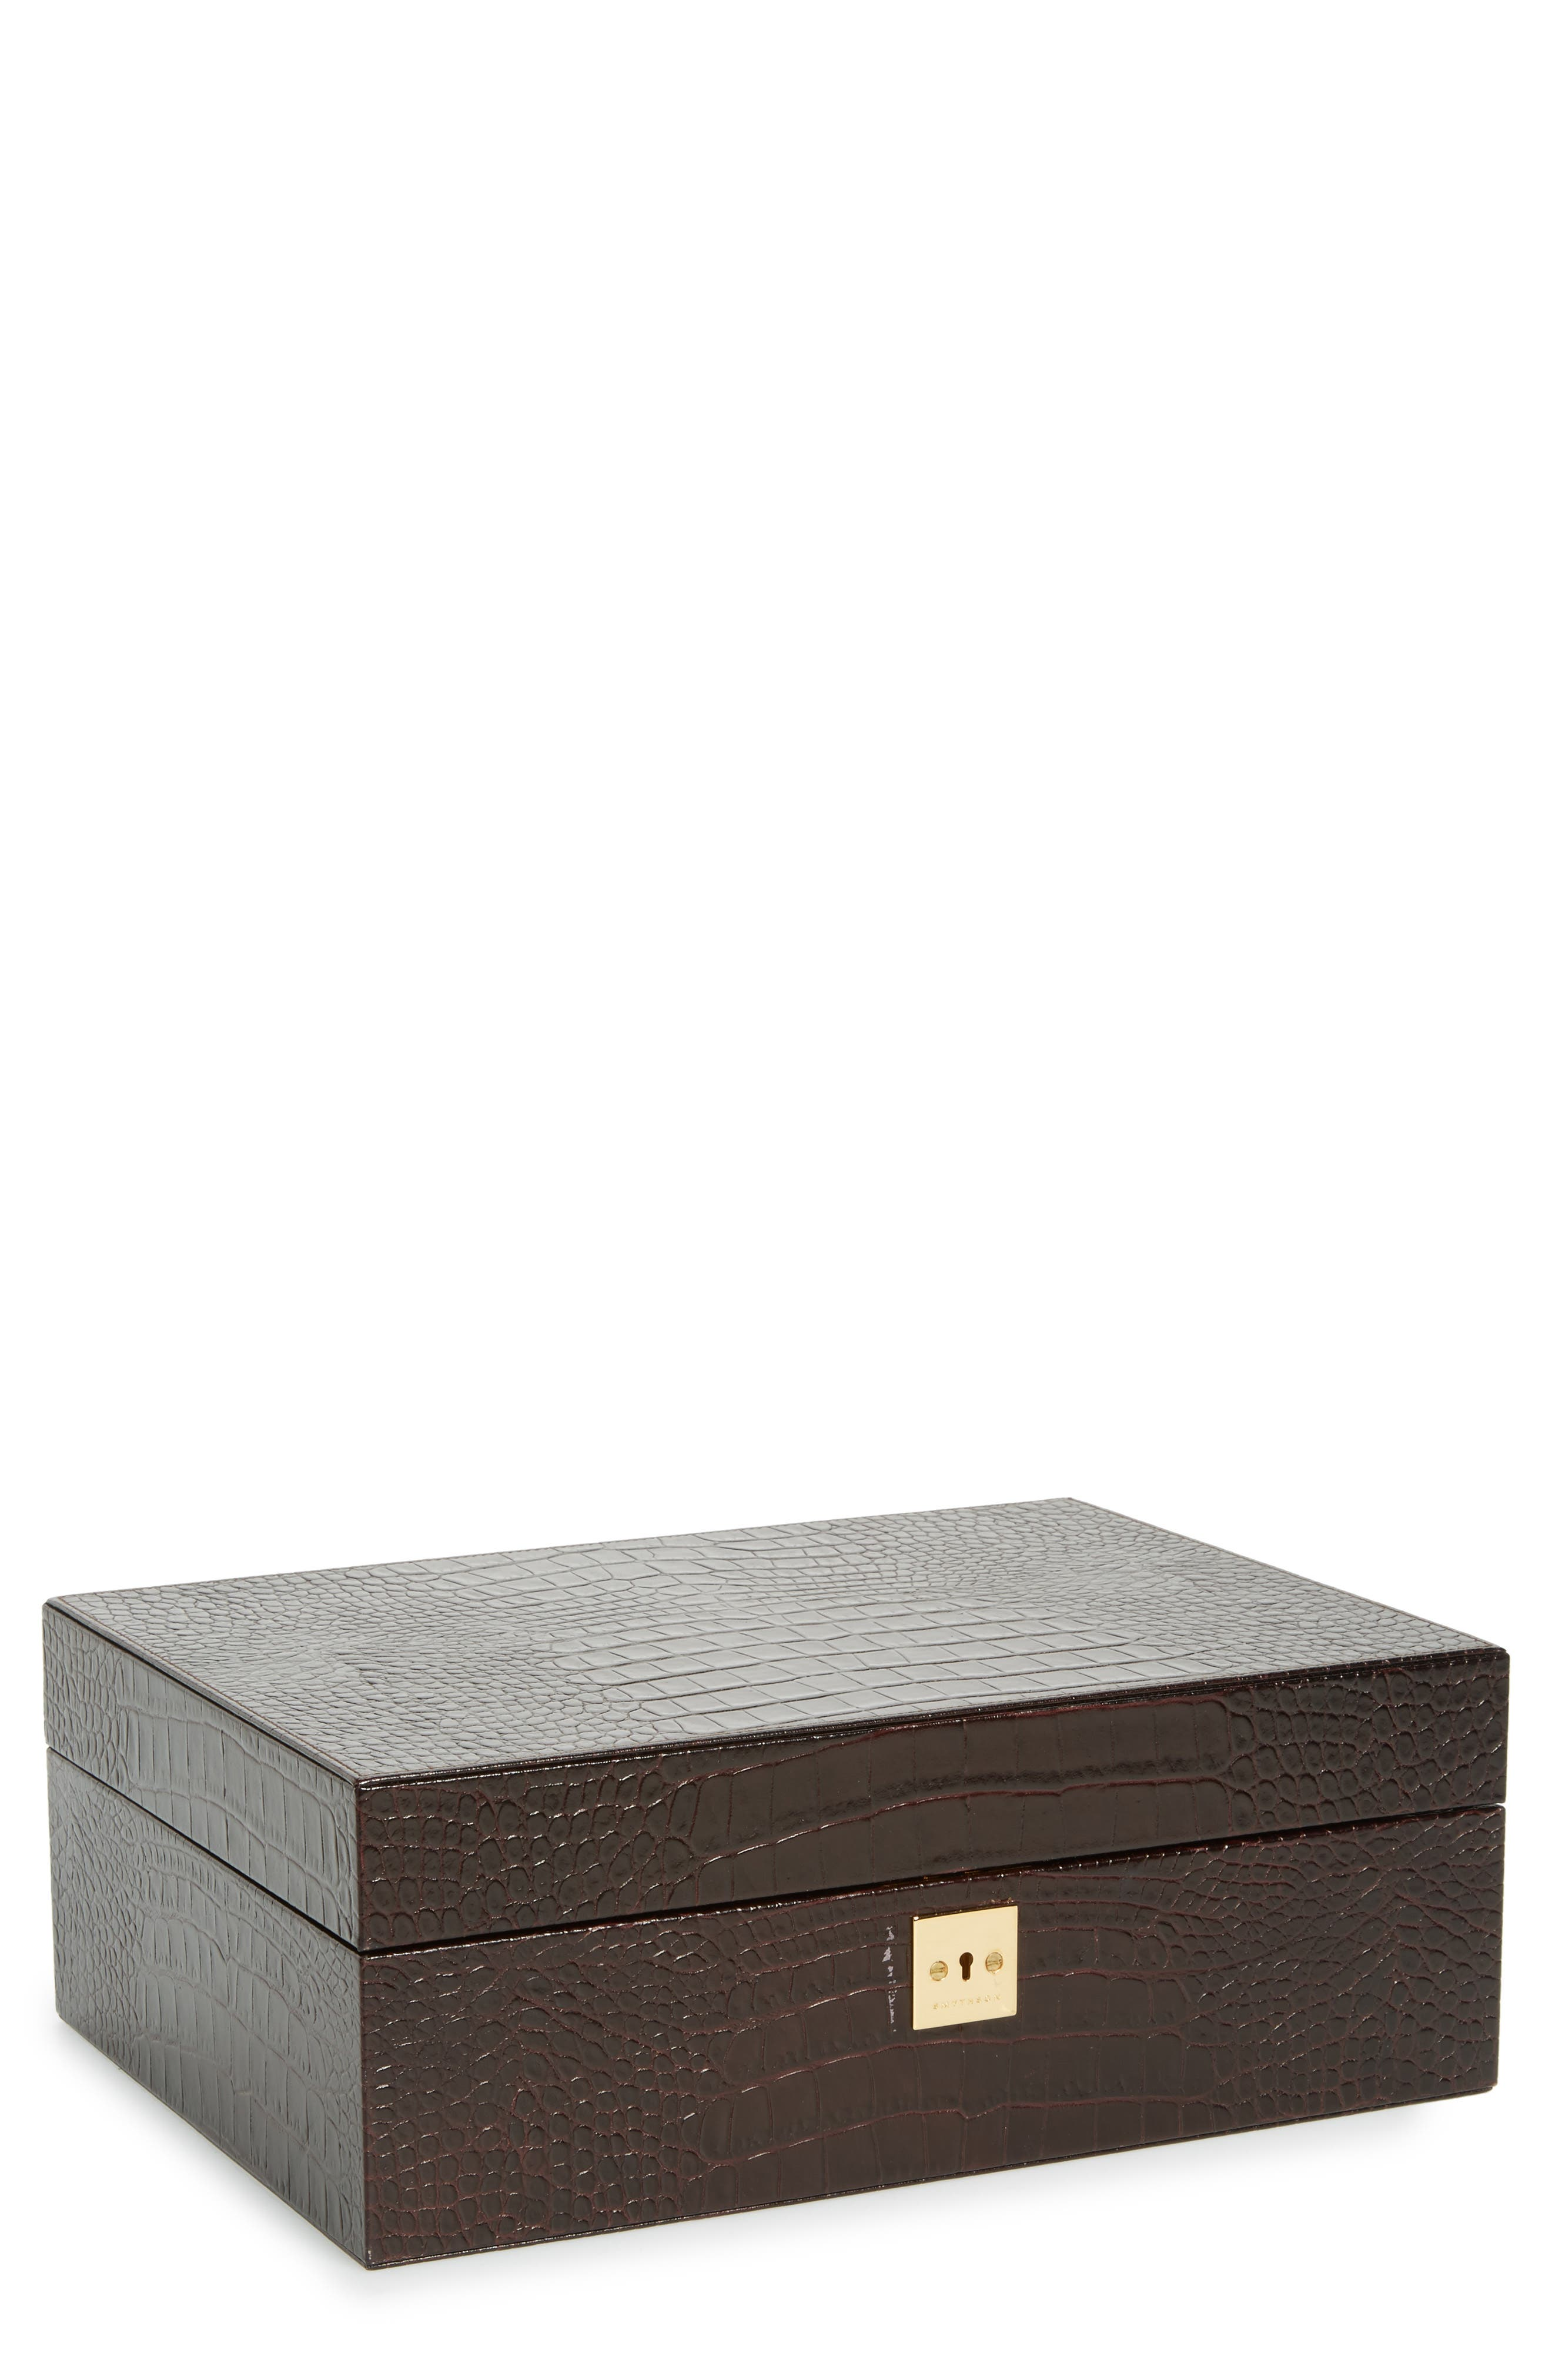 Smythson Mara Croc Embossed Jewelry Box with Travel Tray